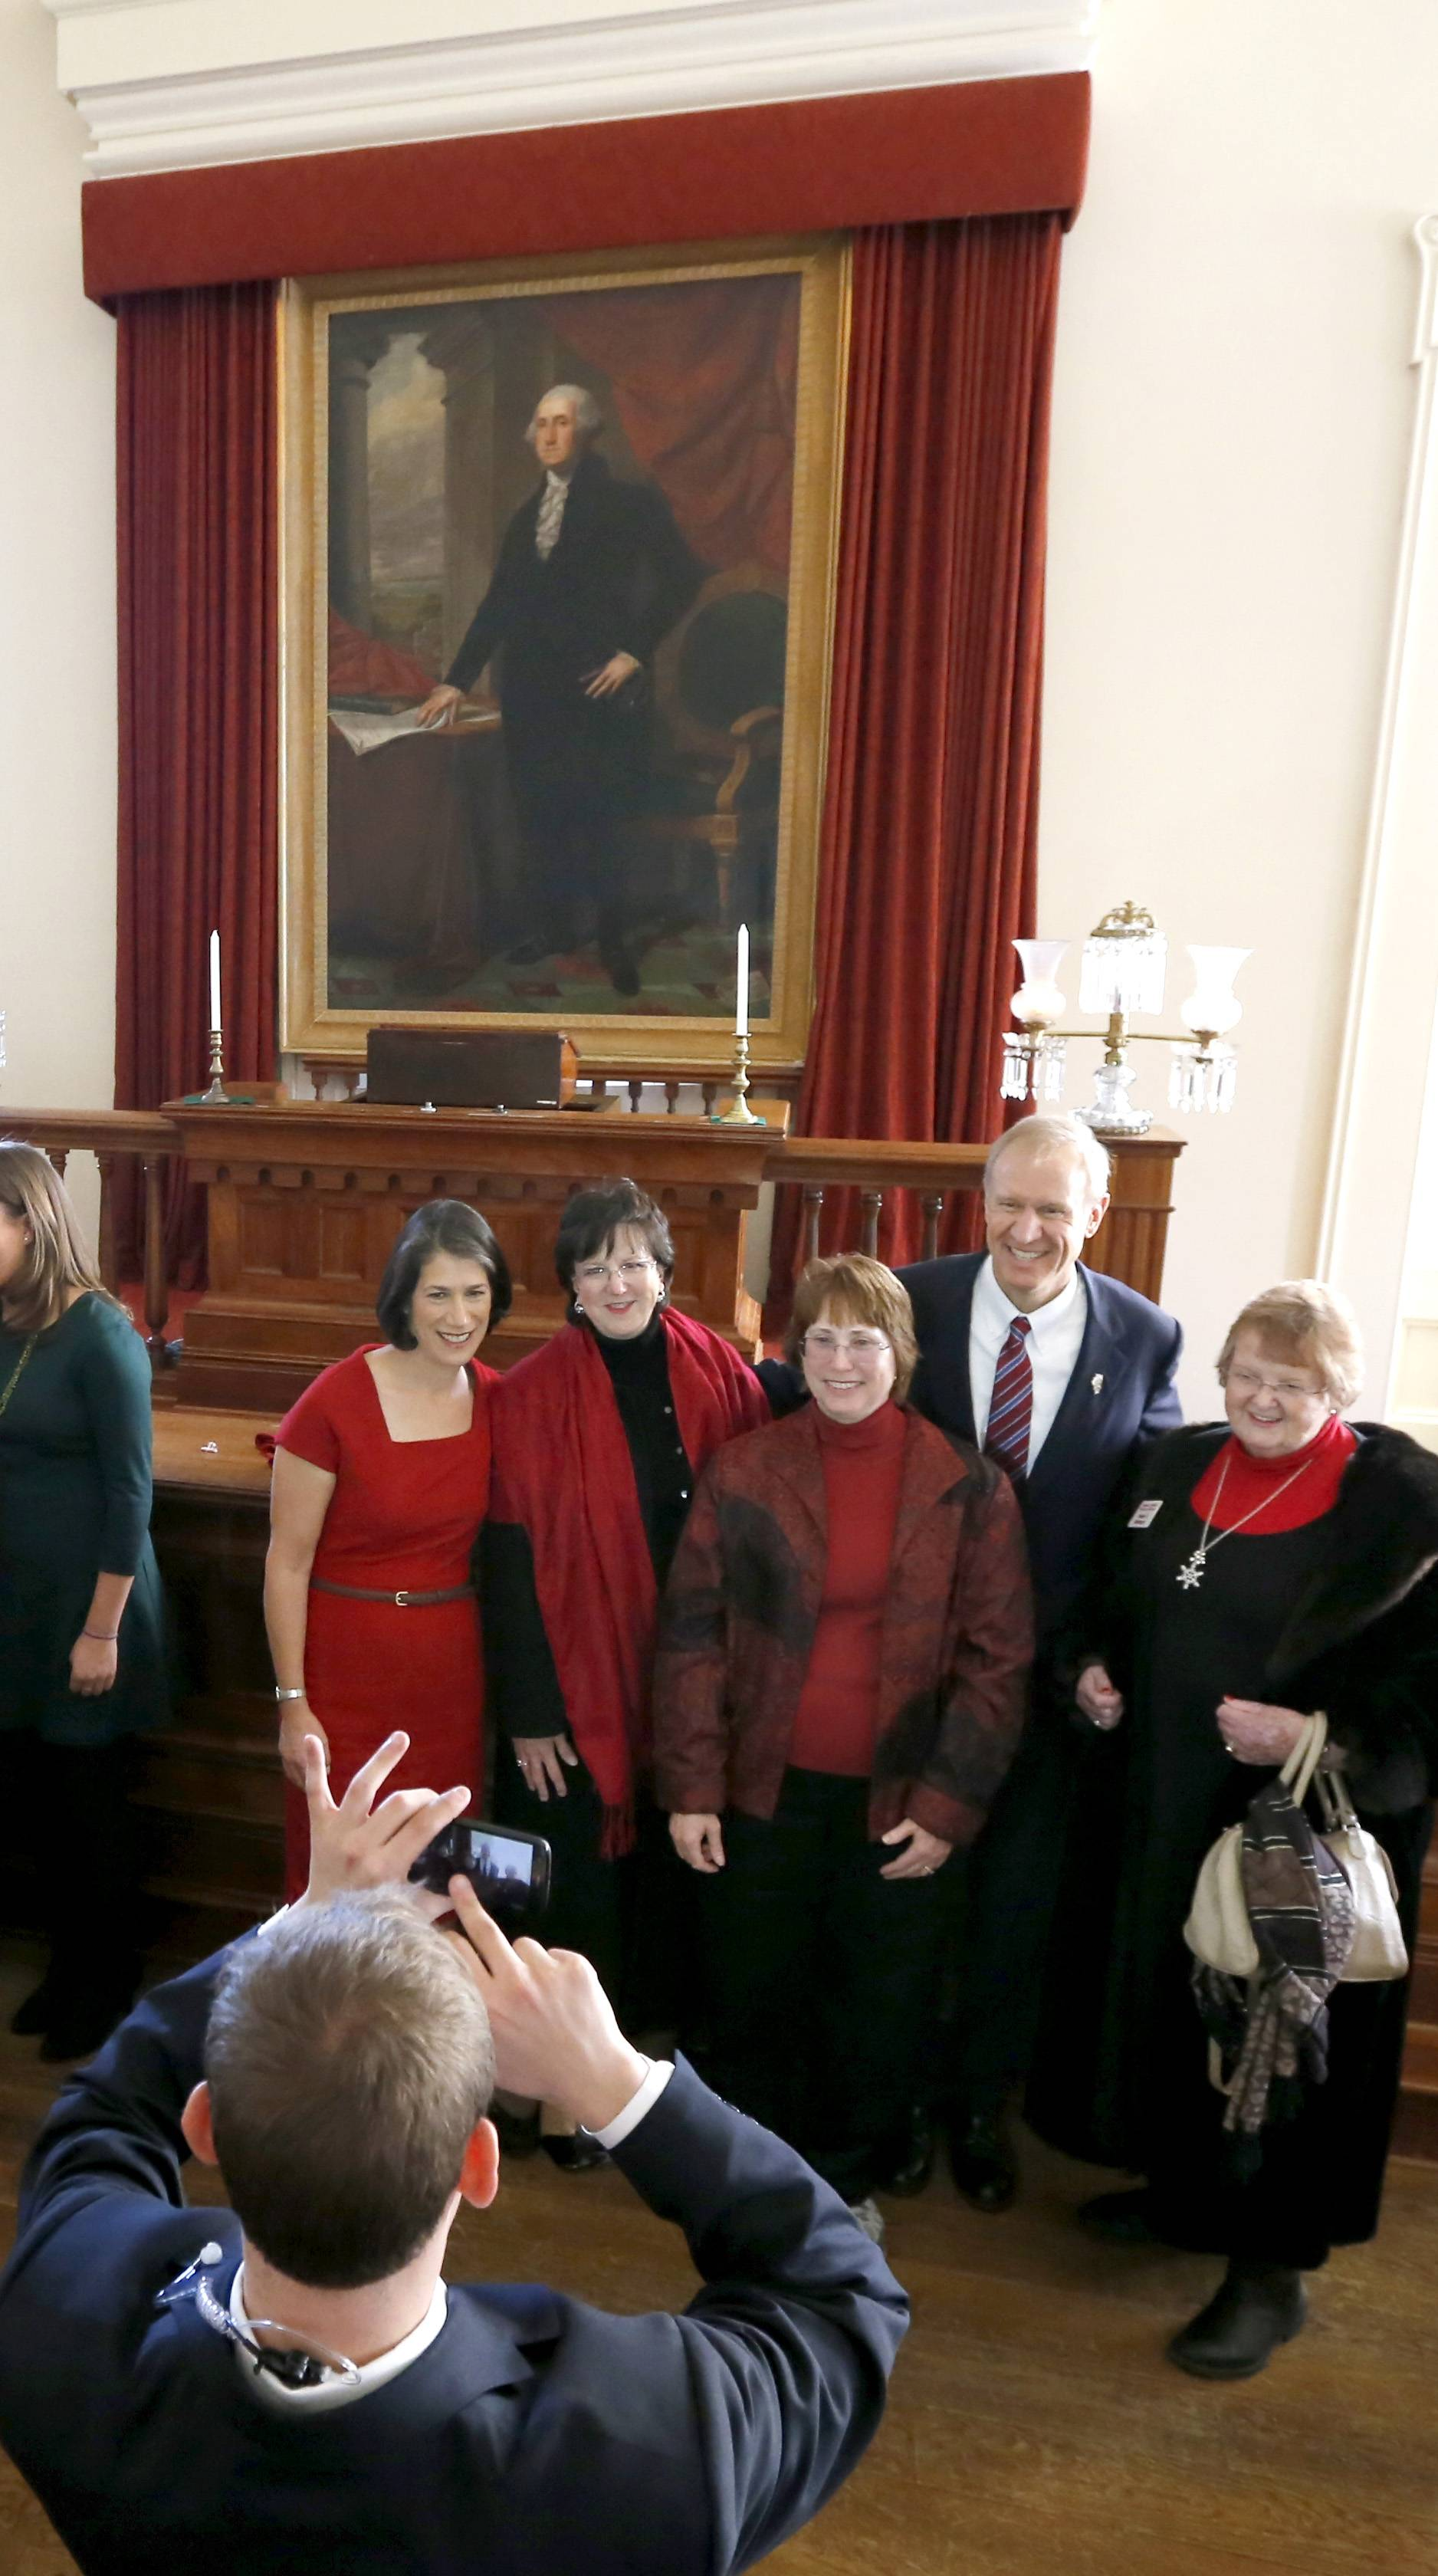 Glimpses of Rauner's inauguration day